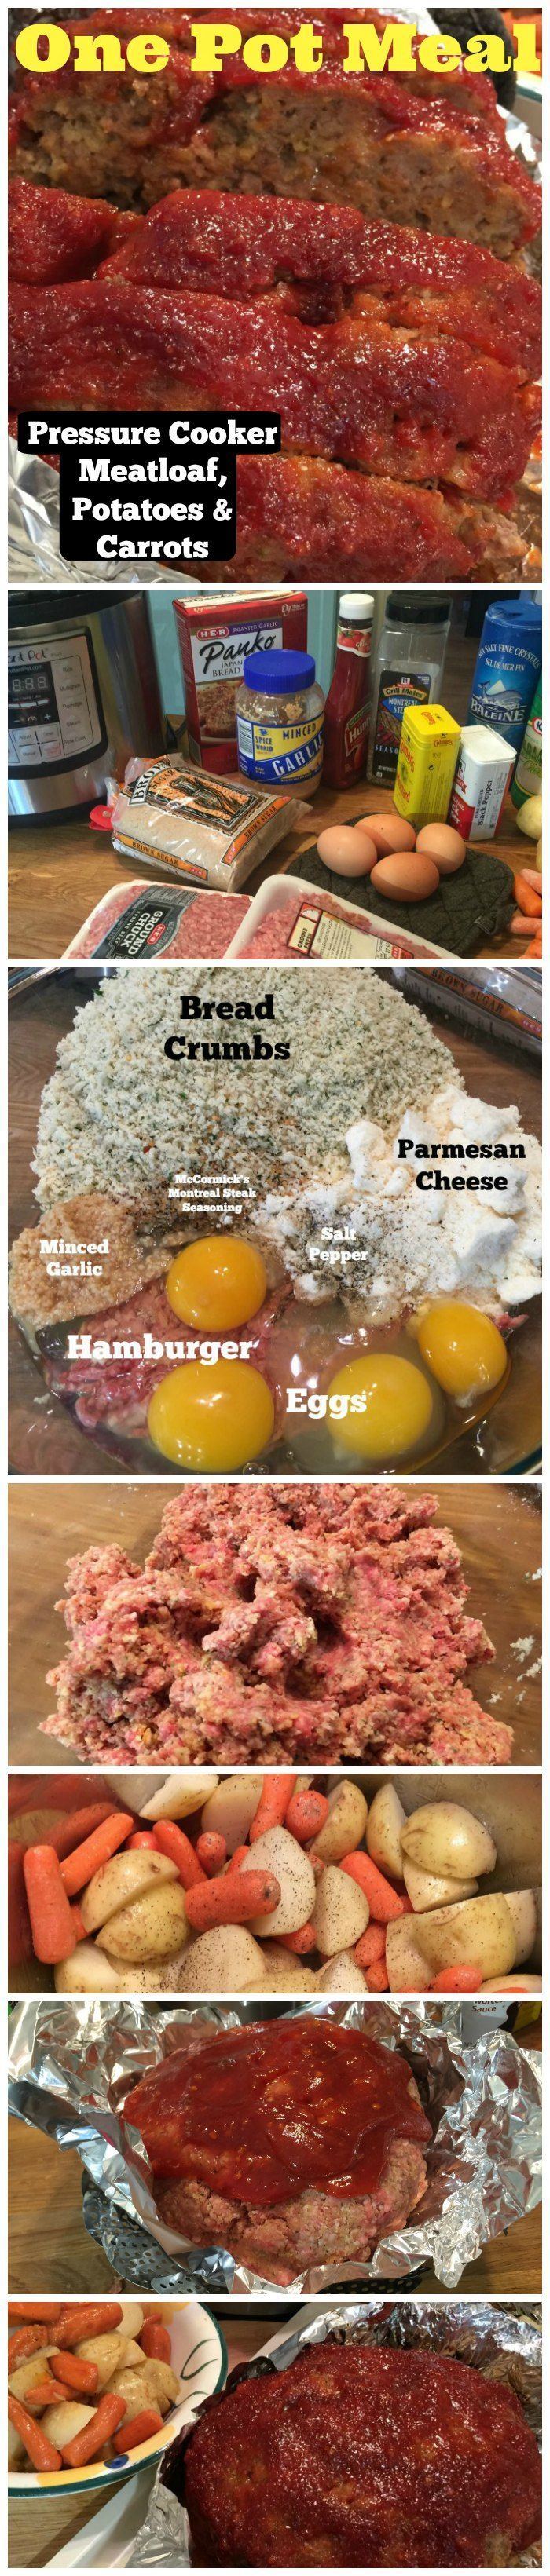 Pressure Cooker Meatloaf Recipe                                                                                                                                                                                 More